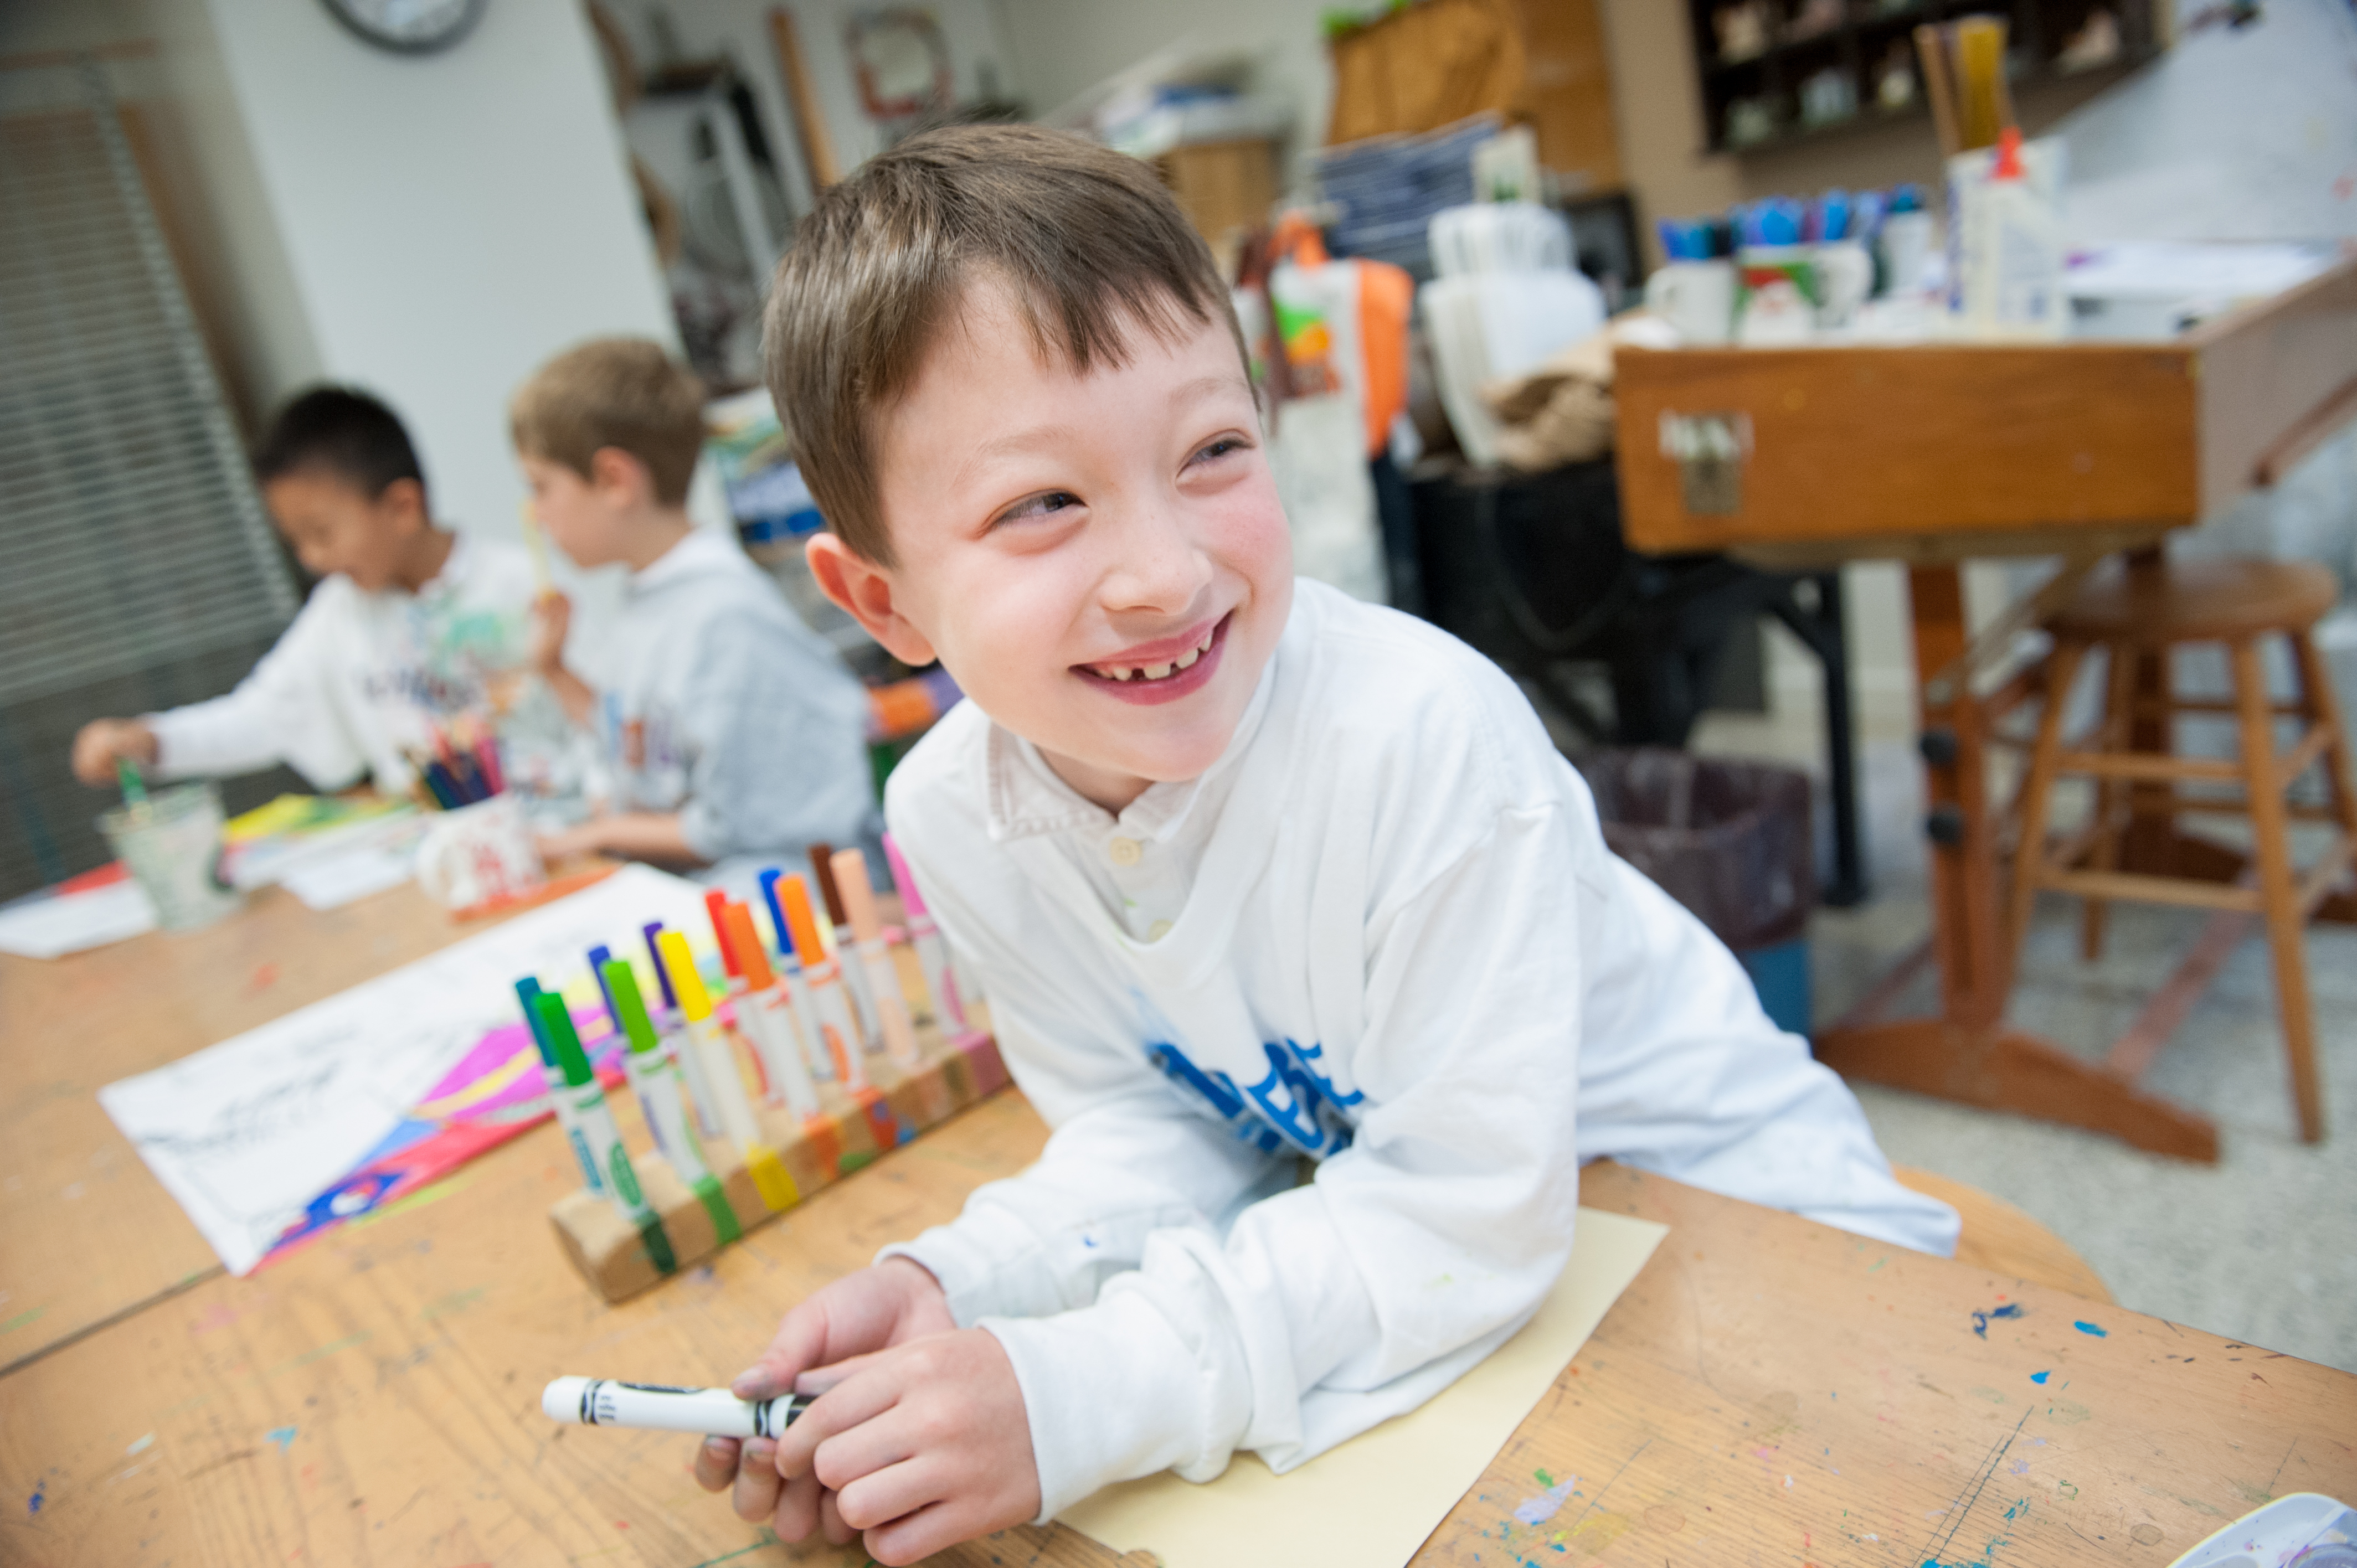 A student excited by a drawing project in a private pre-kindergarten art room